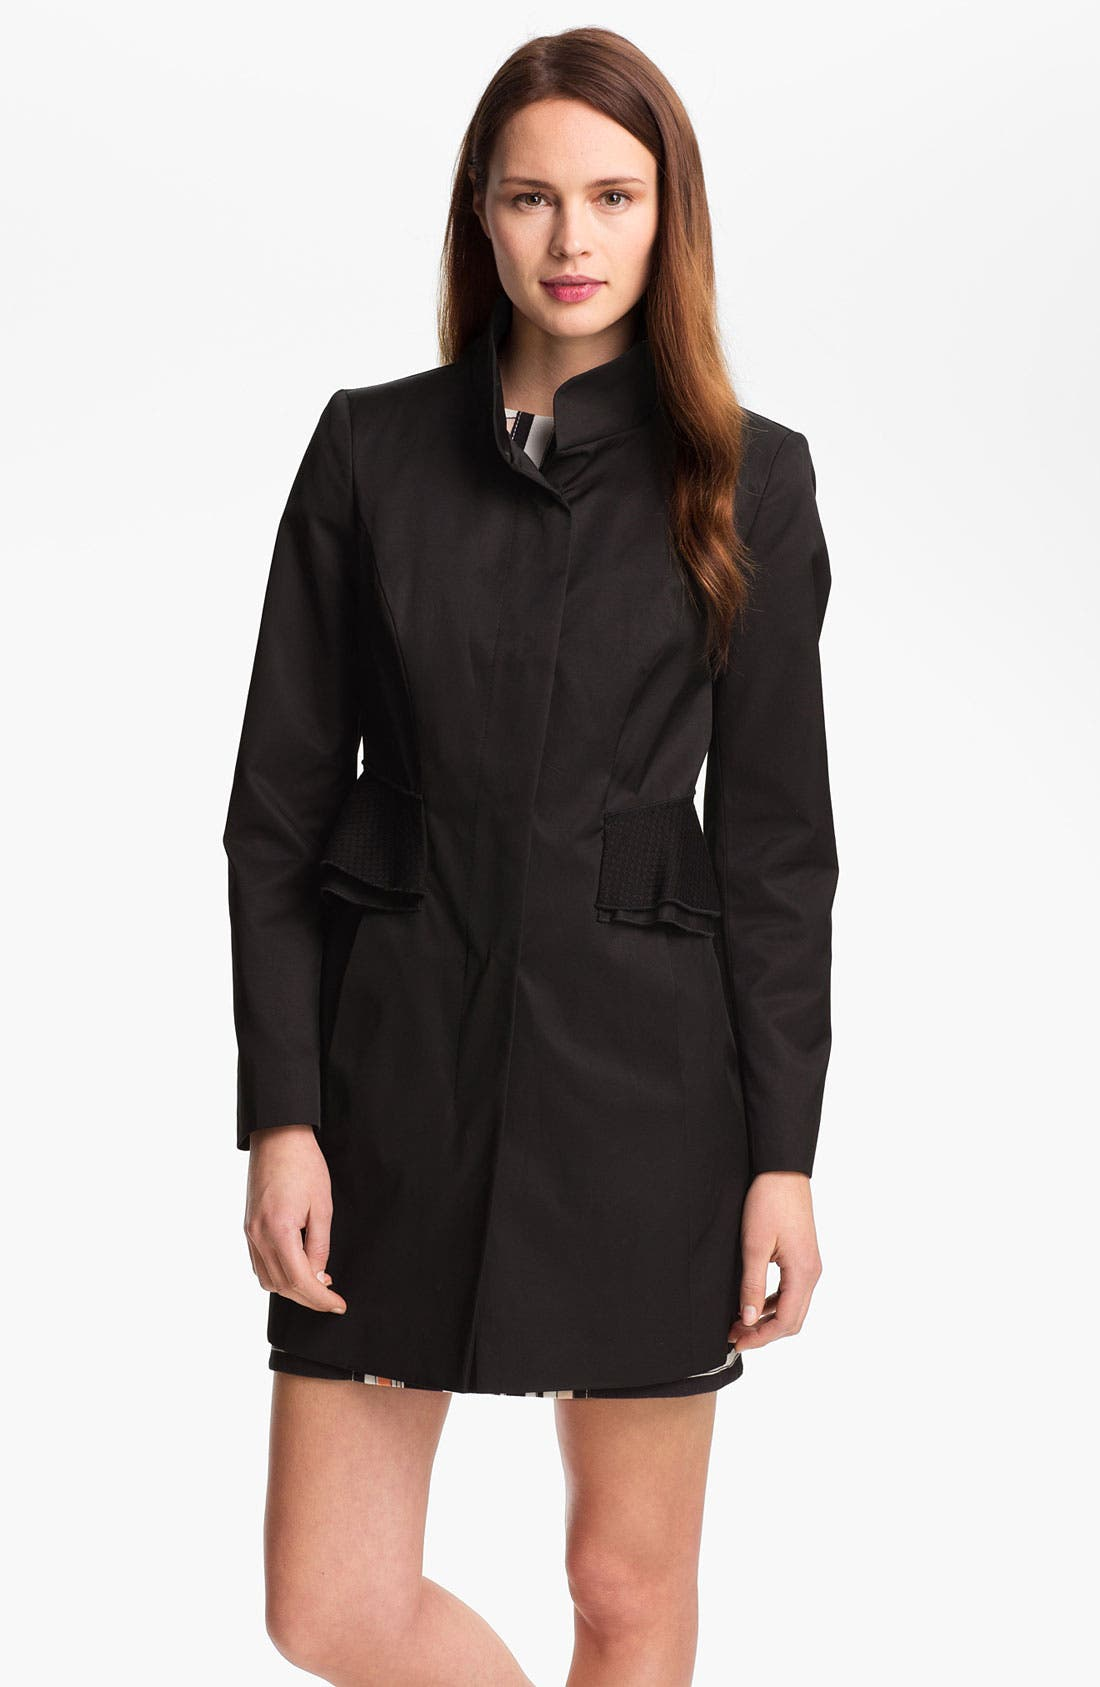 Alternate Image 1 Selected - Tahari 'Jenna' Peplum Walking Coat (Online Only)